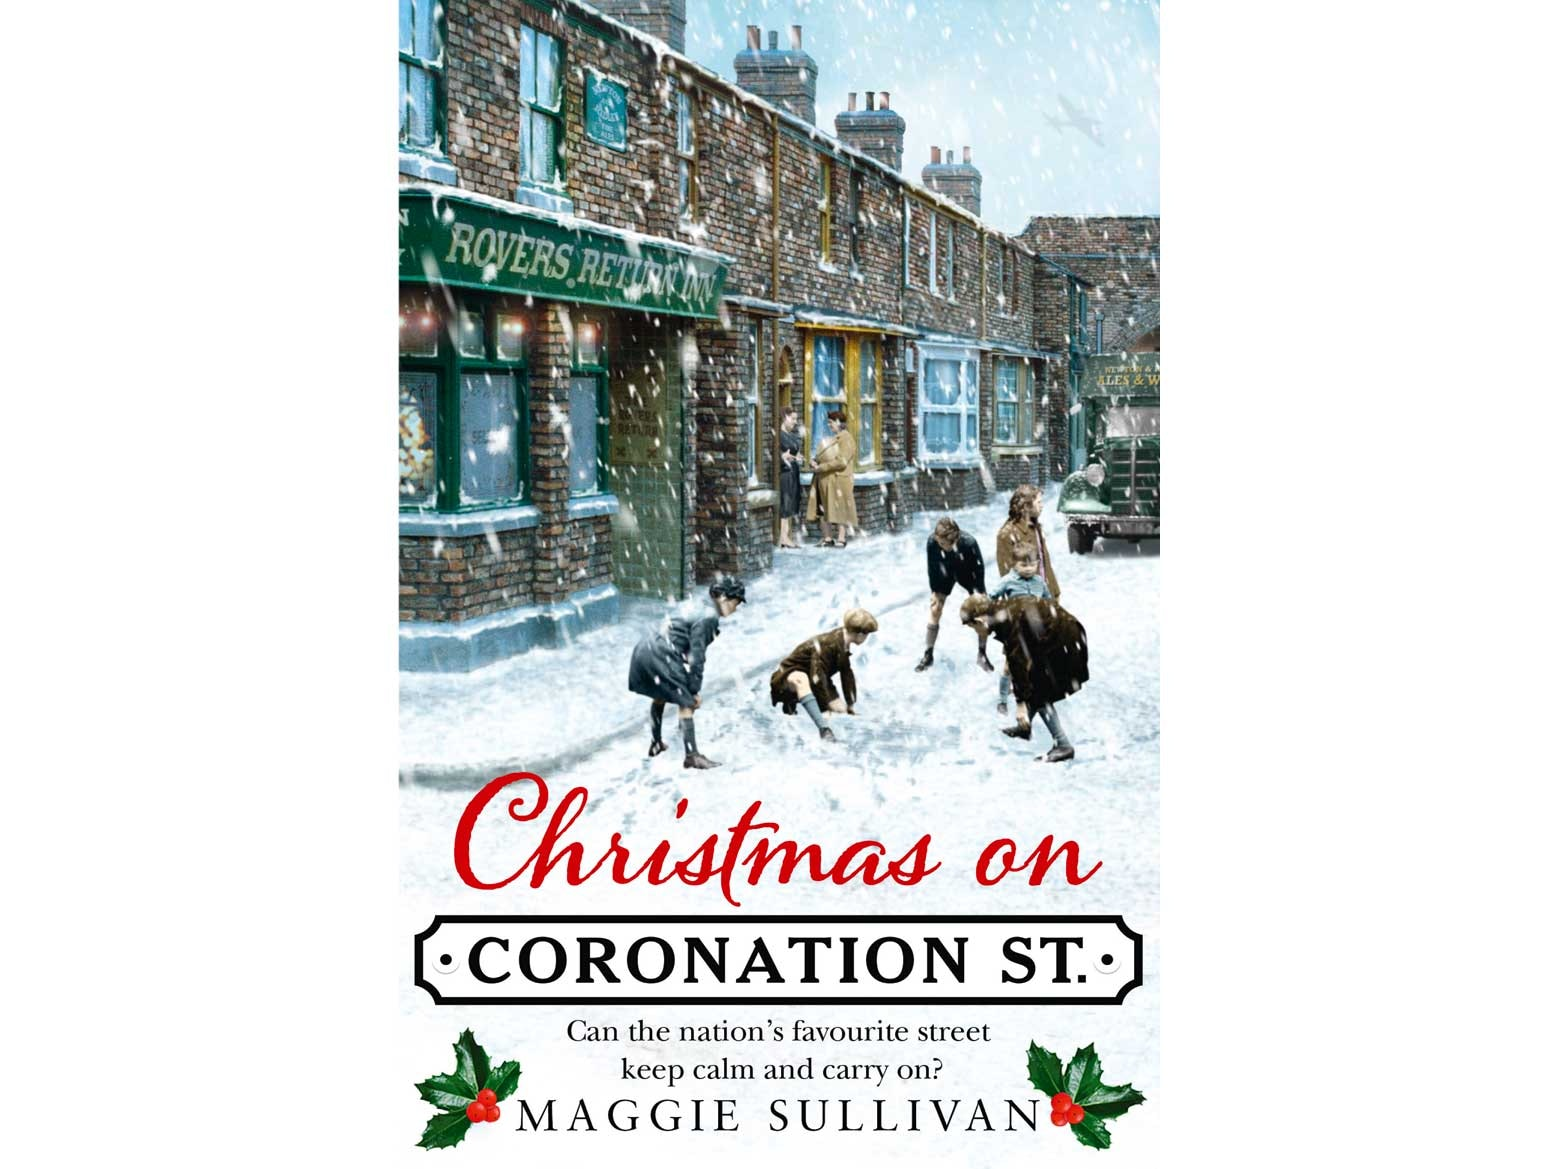 Christmas on Coronation Street by Maggie Sullivan sweepstakes